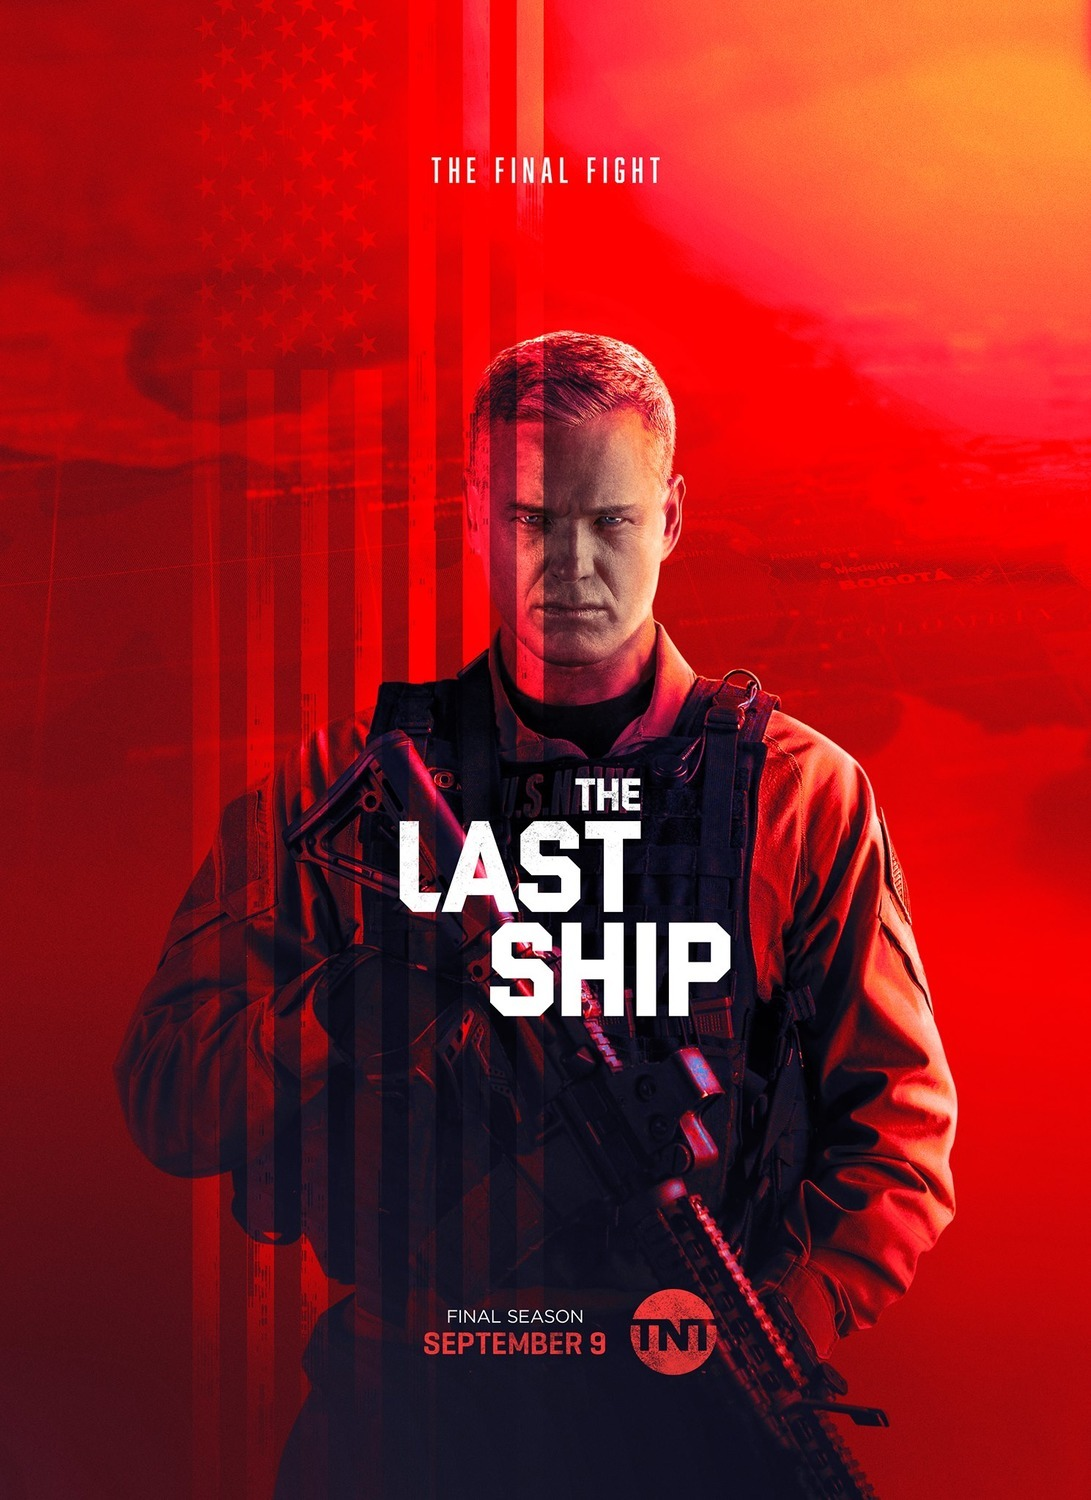 d5abb8940e1d0 The Last Ship (TV Series 2014–2018) - IMDb